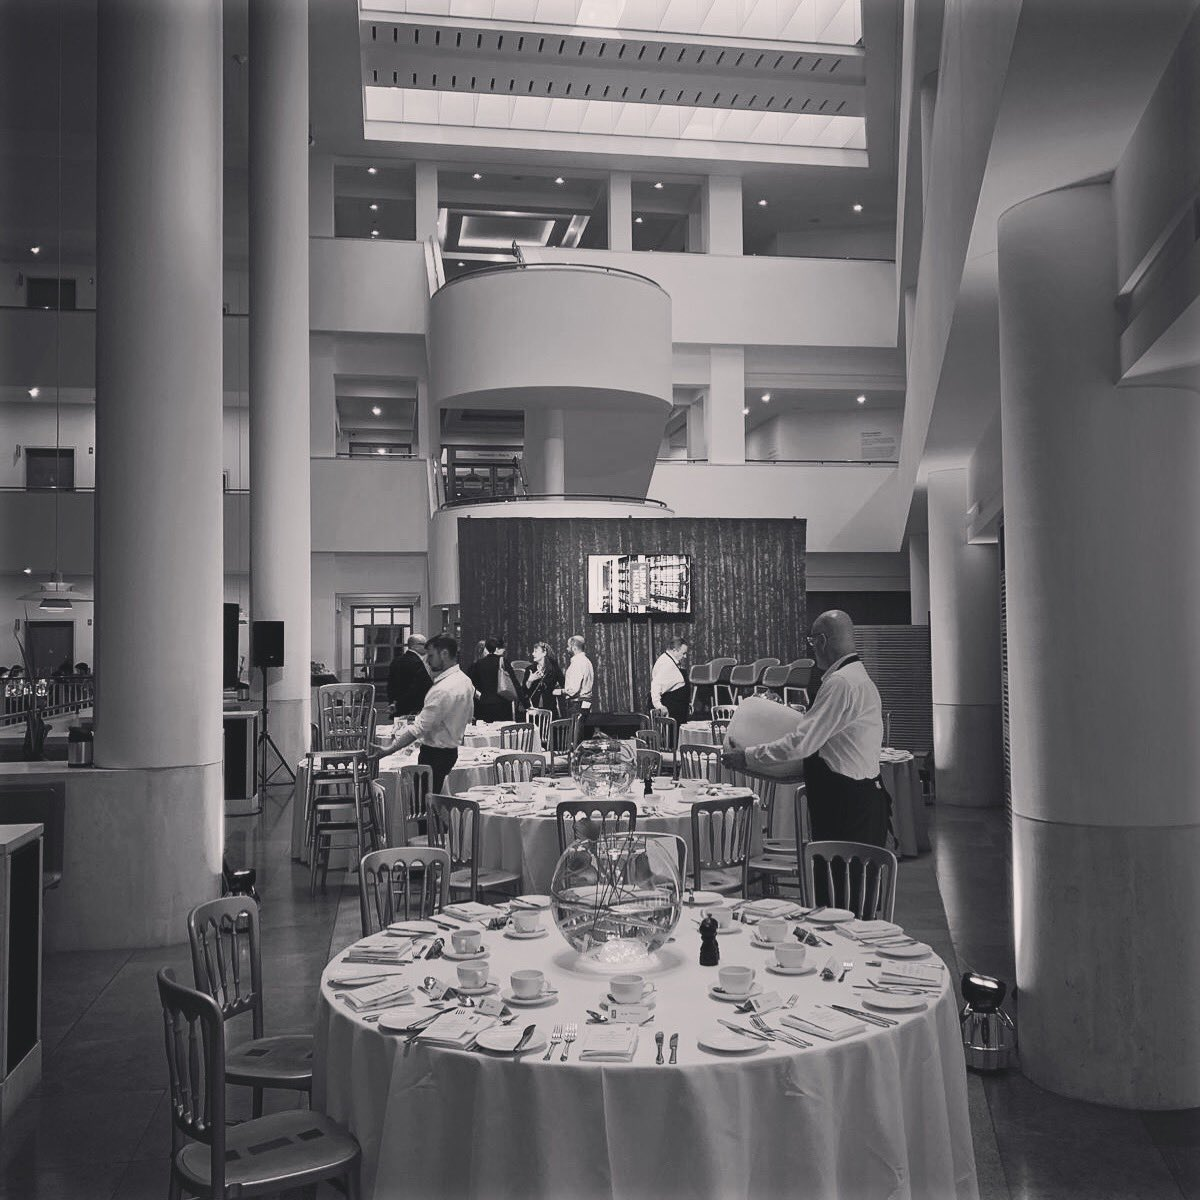 Pre-event shot from last night's event @britishlibrary #EOL #London #Britishlibrary #eventprofs #eventporduction #preevent